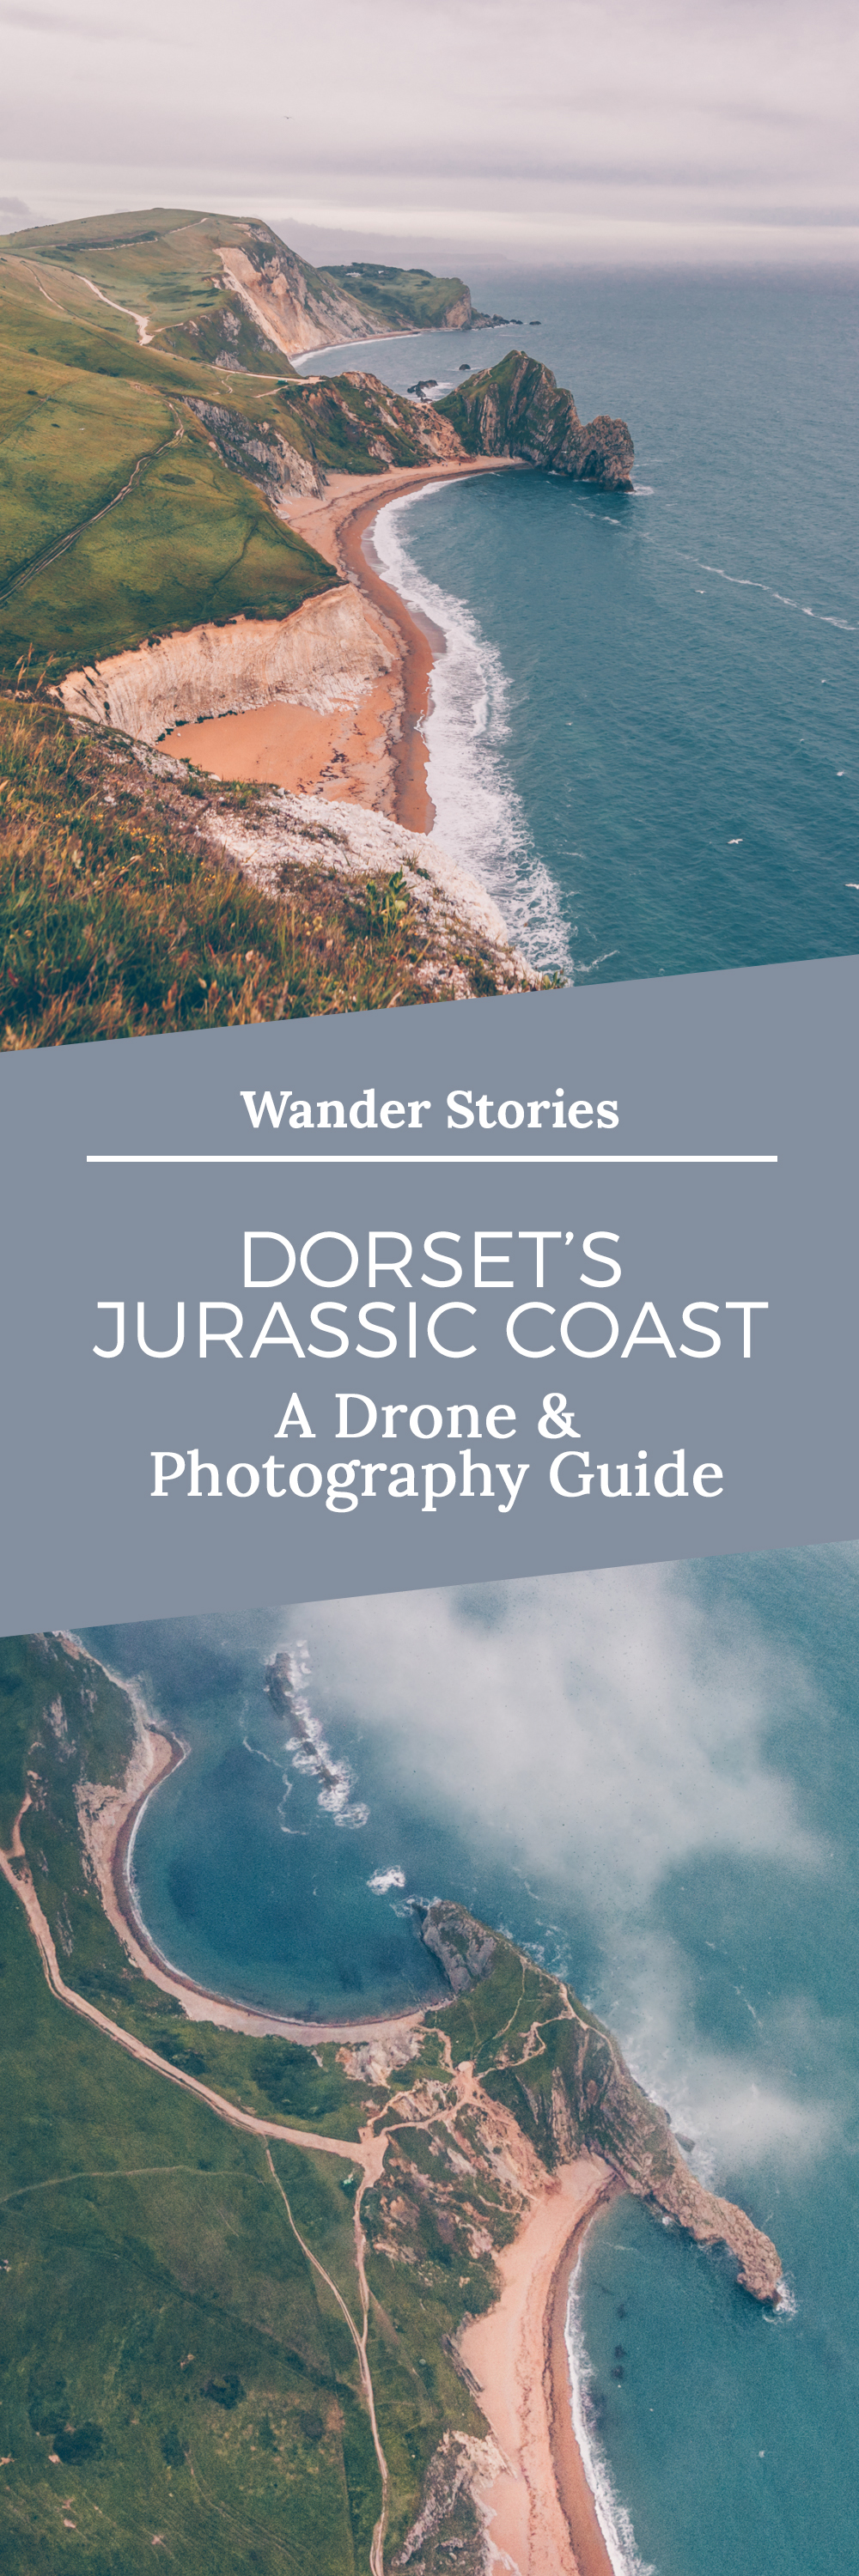 Dorset's Jurassic Coast A Photography Drone Guide by Kati of black.white.vivid.-Wander-Stories